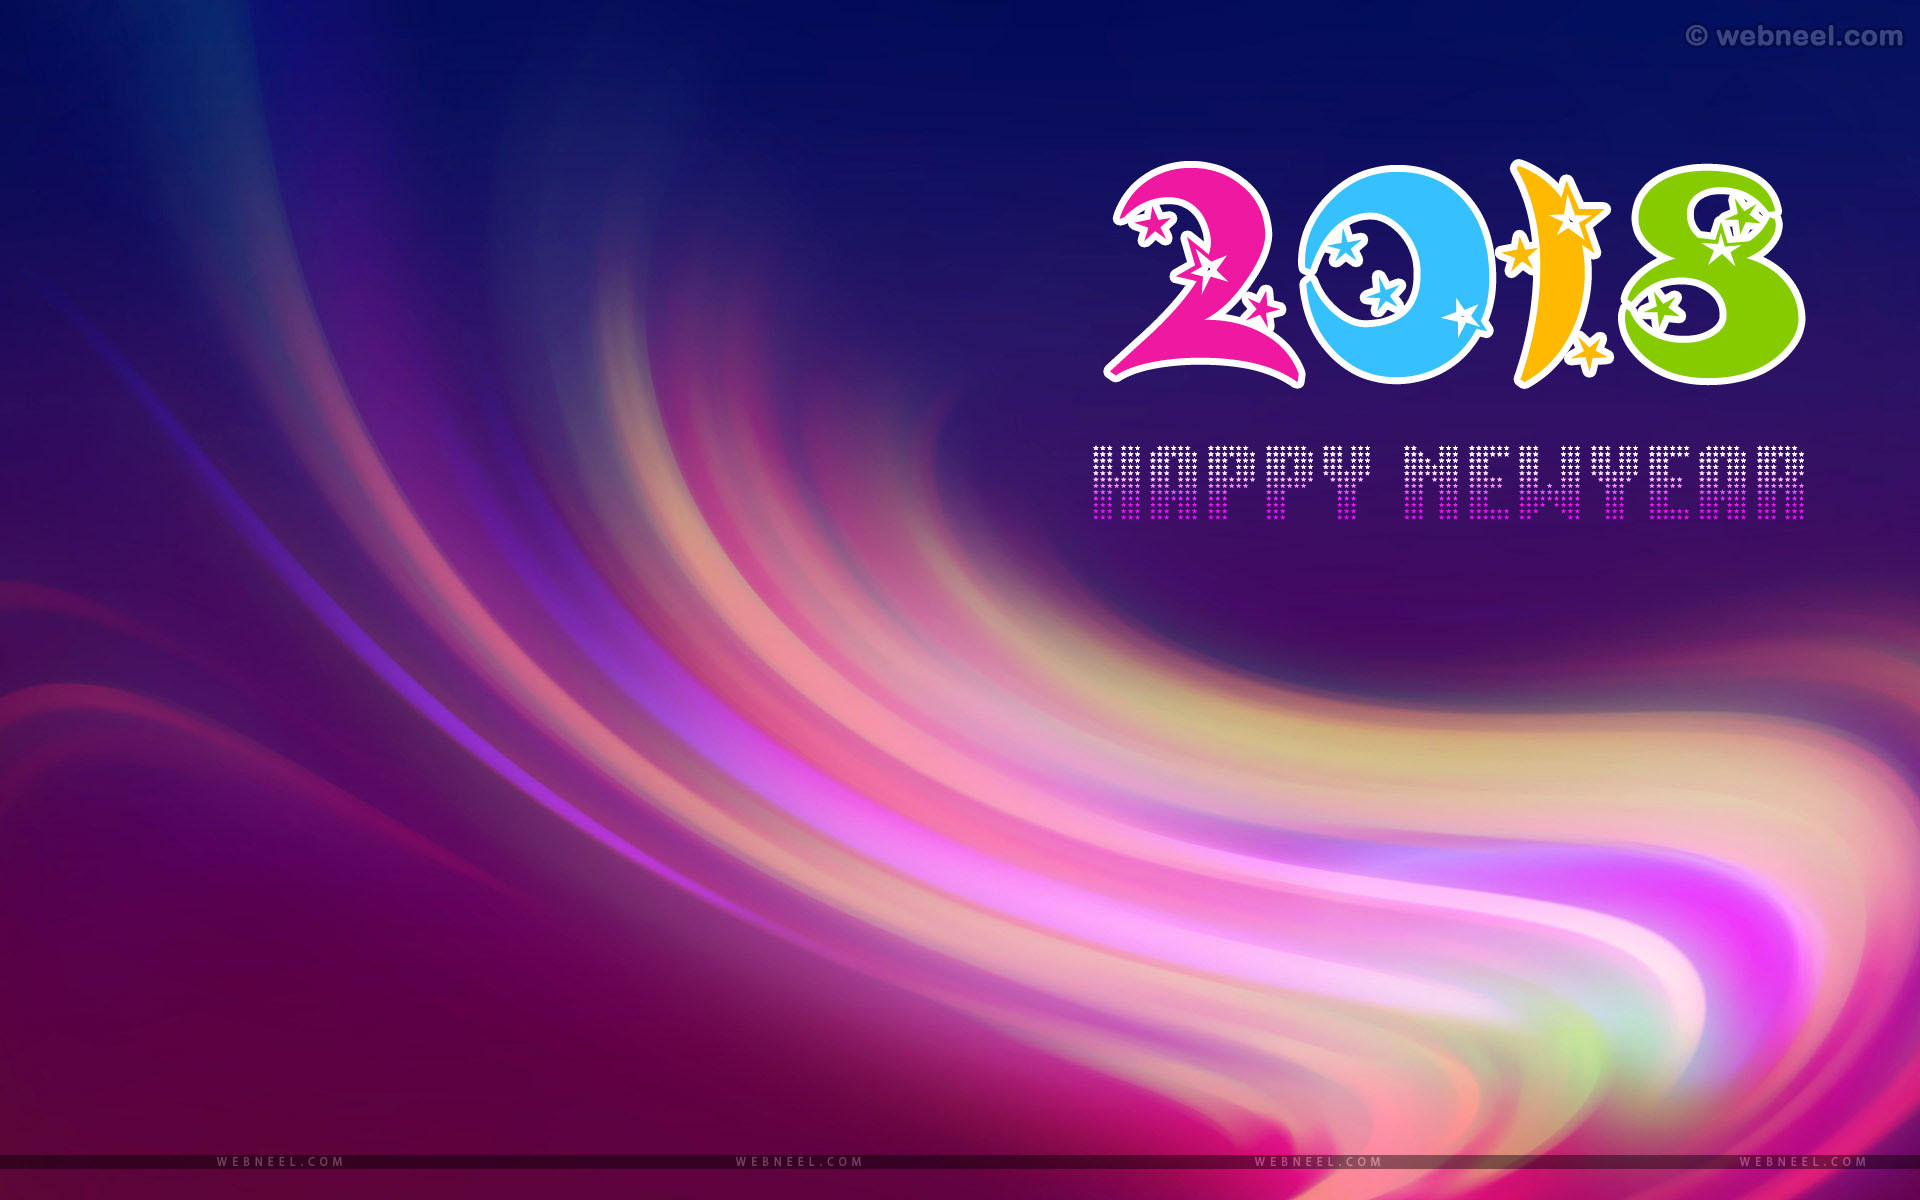 2880x1800 happy new year 2016 wallpapers and images httpwwwnewyear2016quotescom happy new year 2016 wallpapers and images